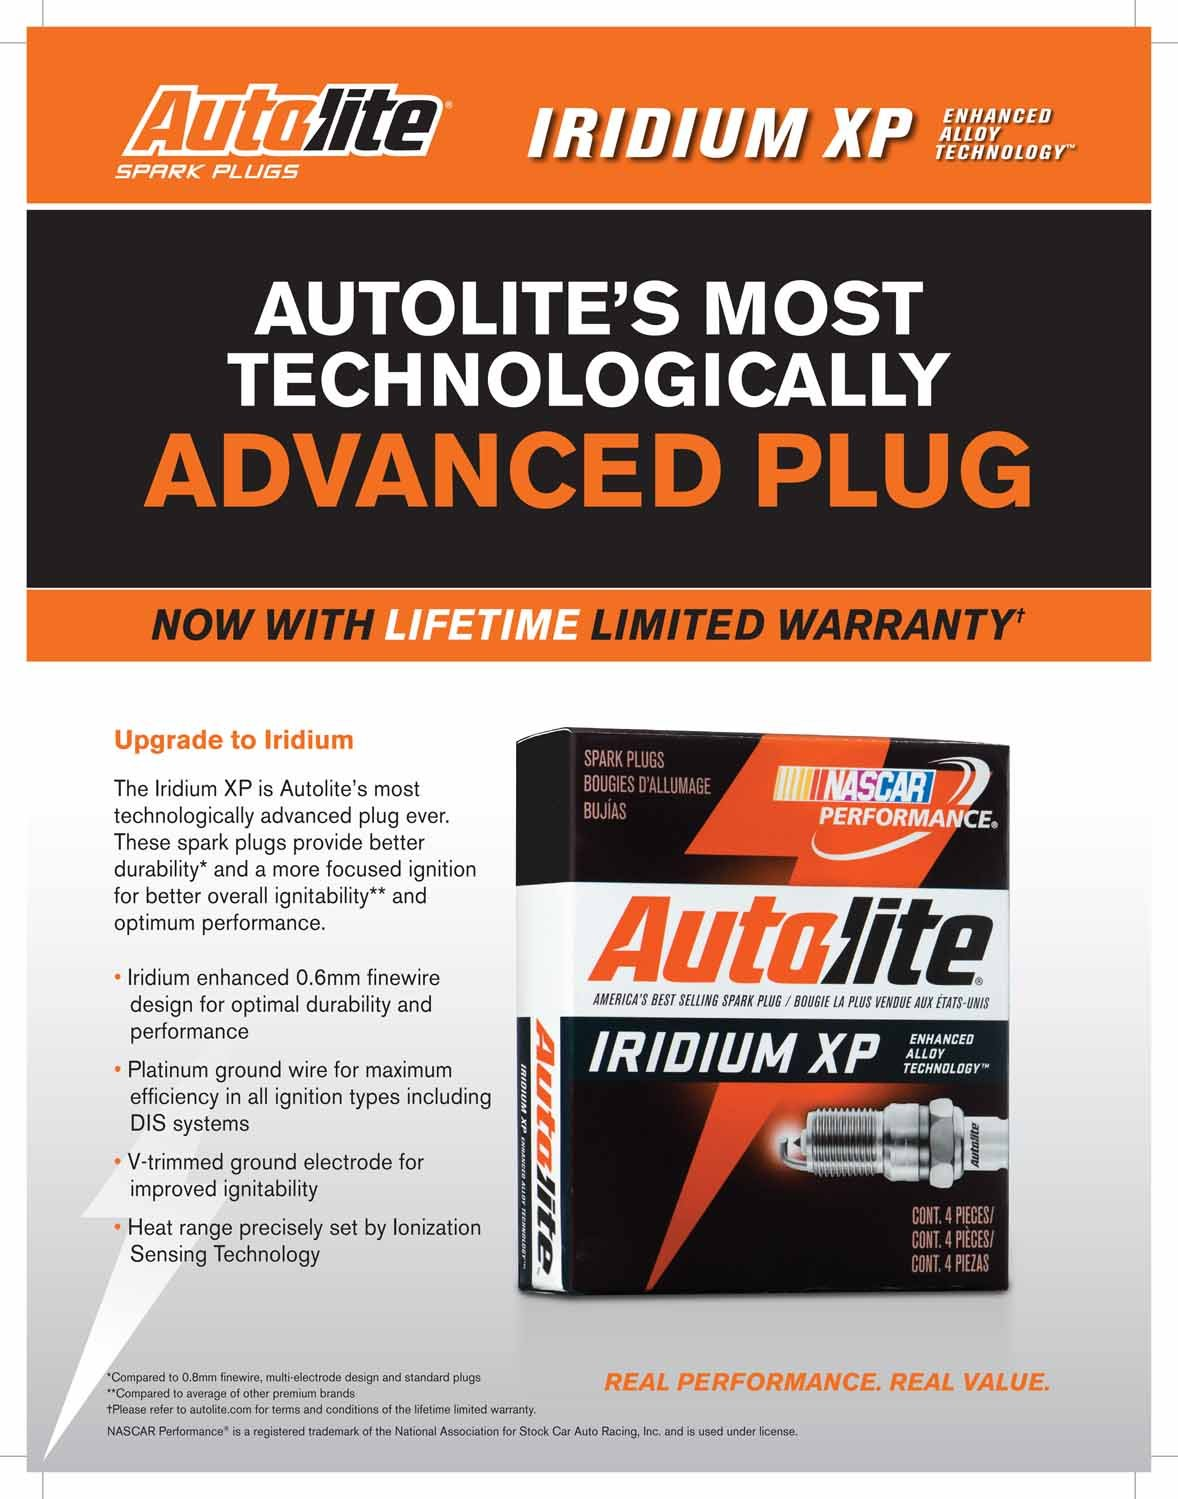 Amazon.com: Autolite XP5245-4PK Iridium XP Spark Plug, Pack of 4: Automotive